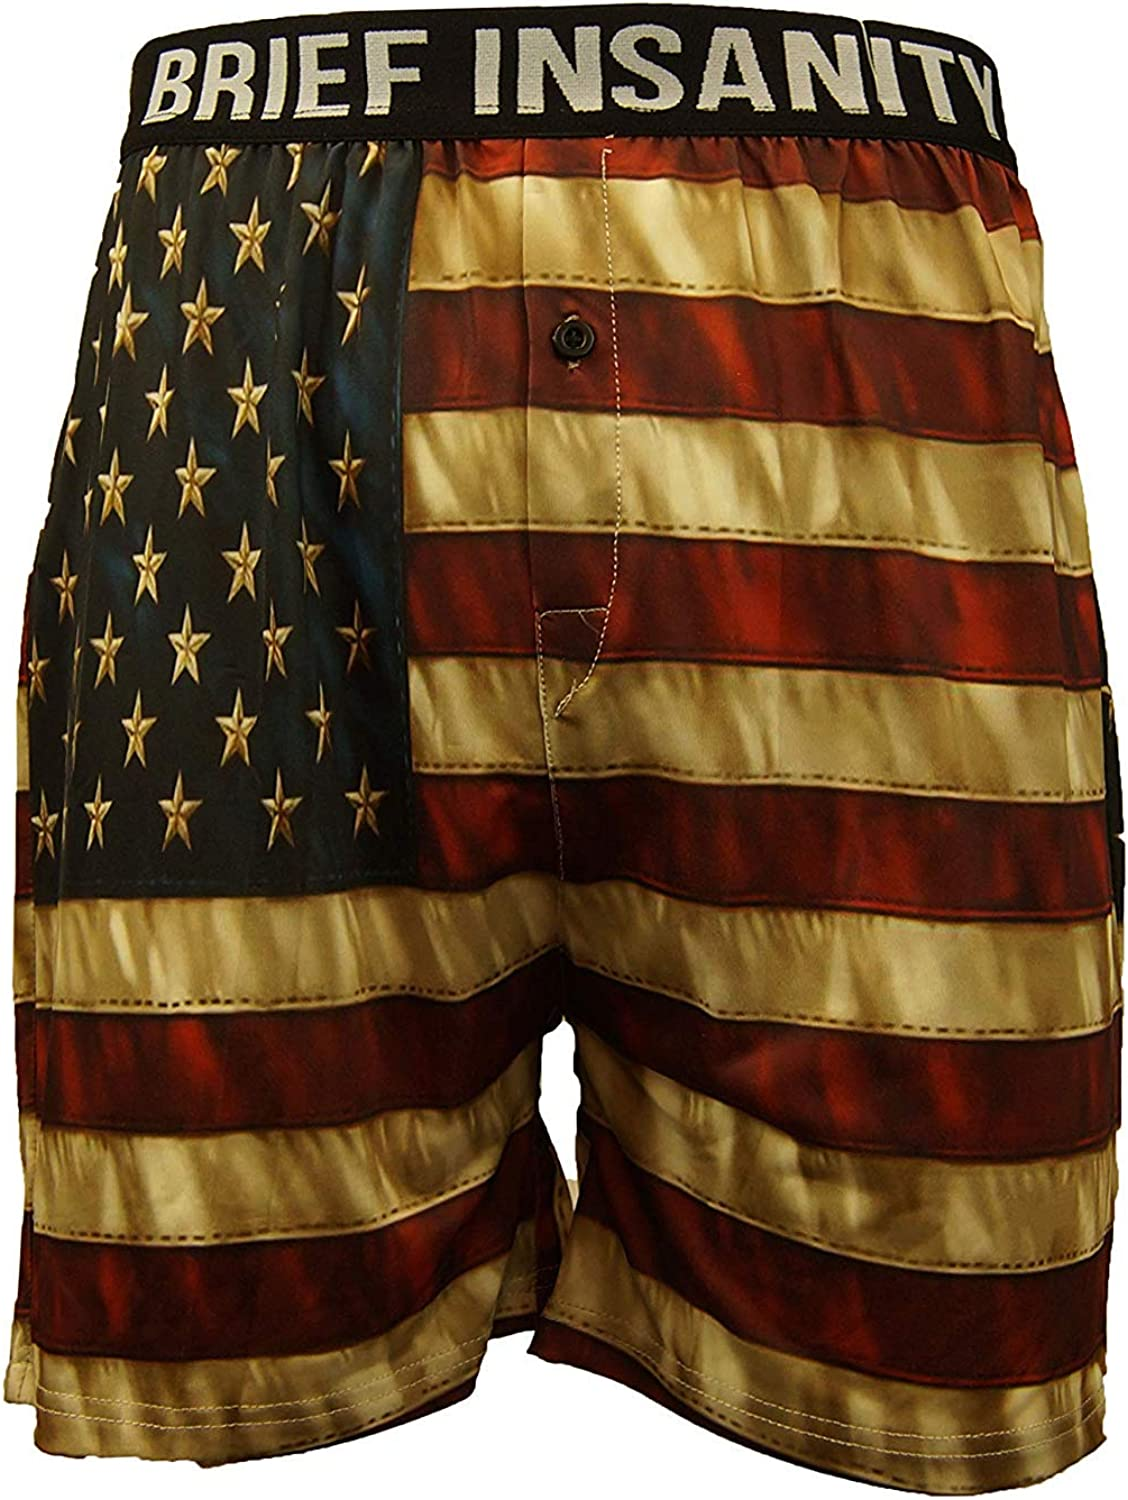 BRIEF INSANITY Patriotic Boxer Briefs for Men and Women | American Flag Print Boxer Shorts - USA Underwear